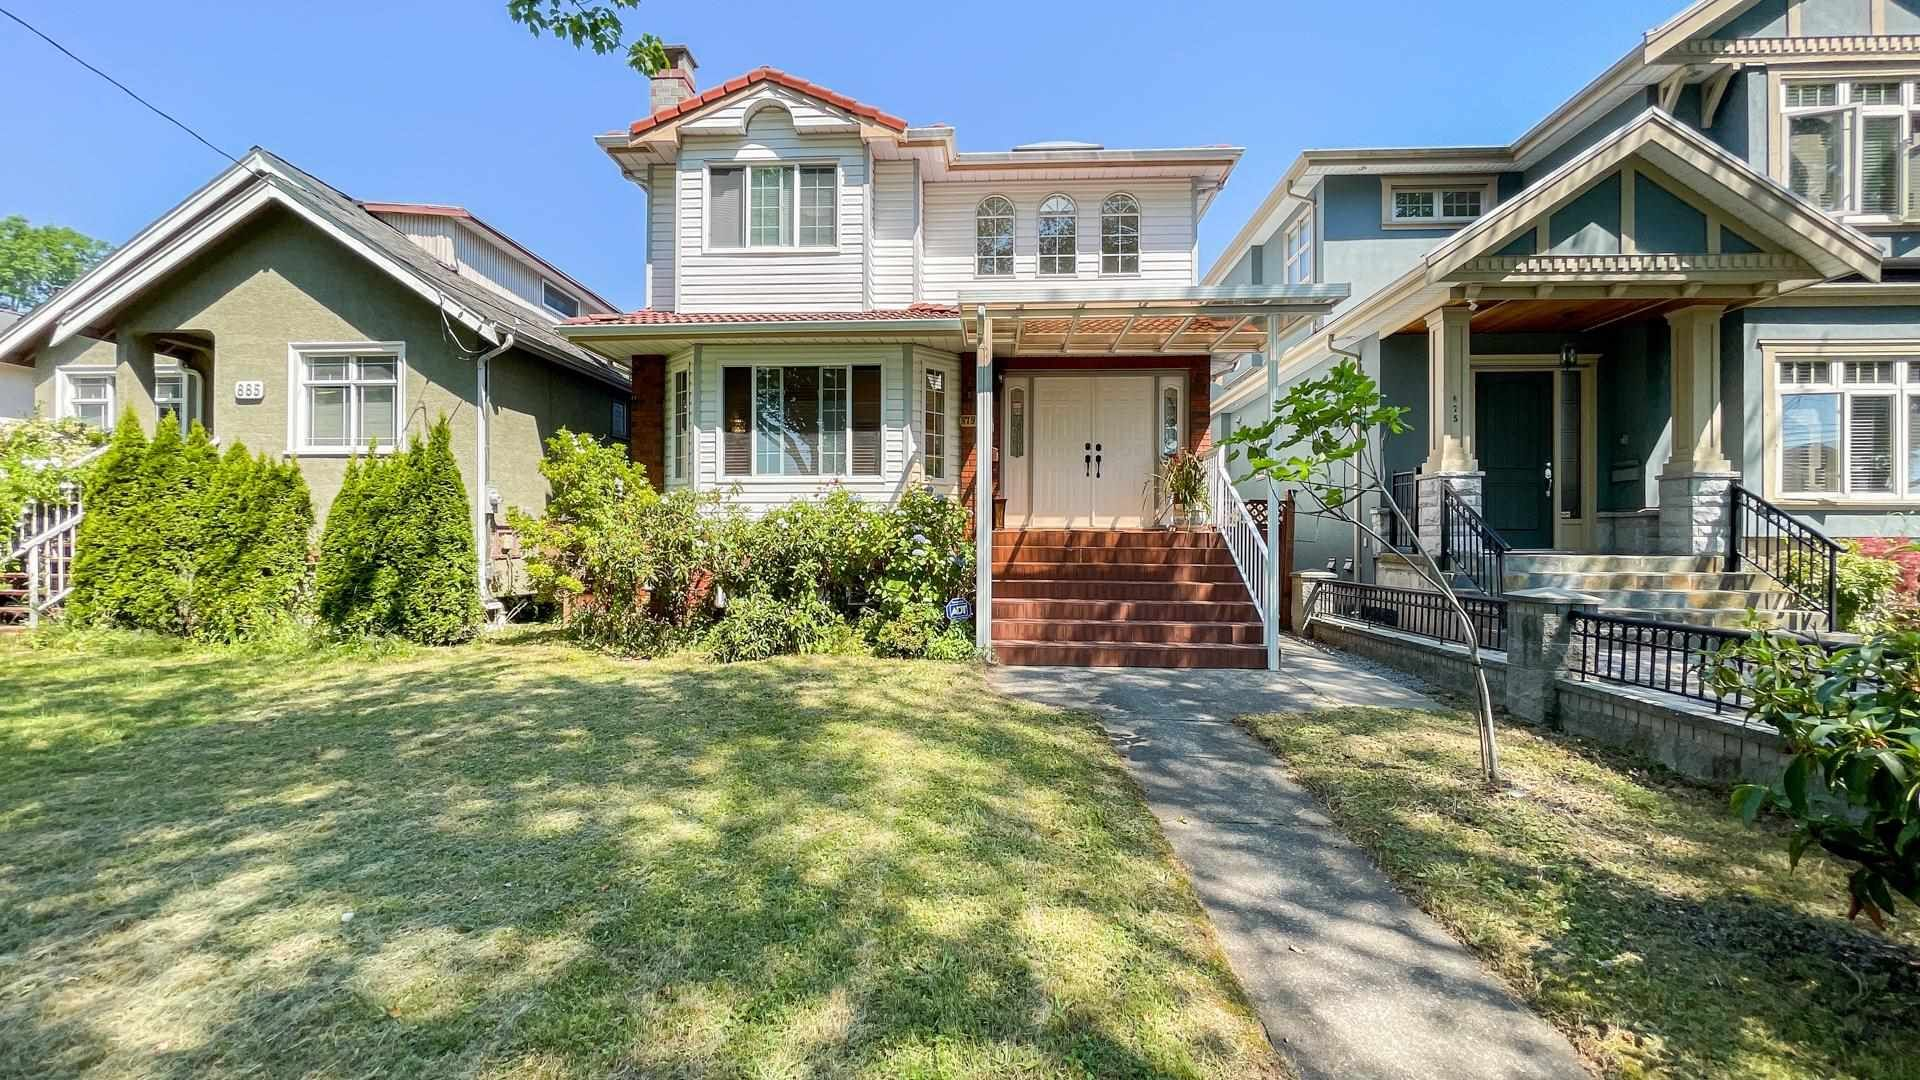 Main Photo: 879 W 60TH Avenue in Vancouver: Marpole House for sale (Vancouver West)  : MLS®# R2606107